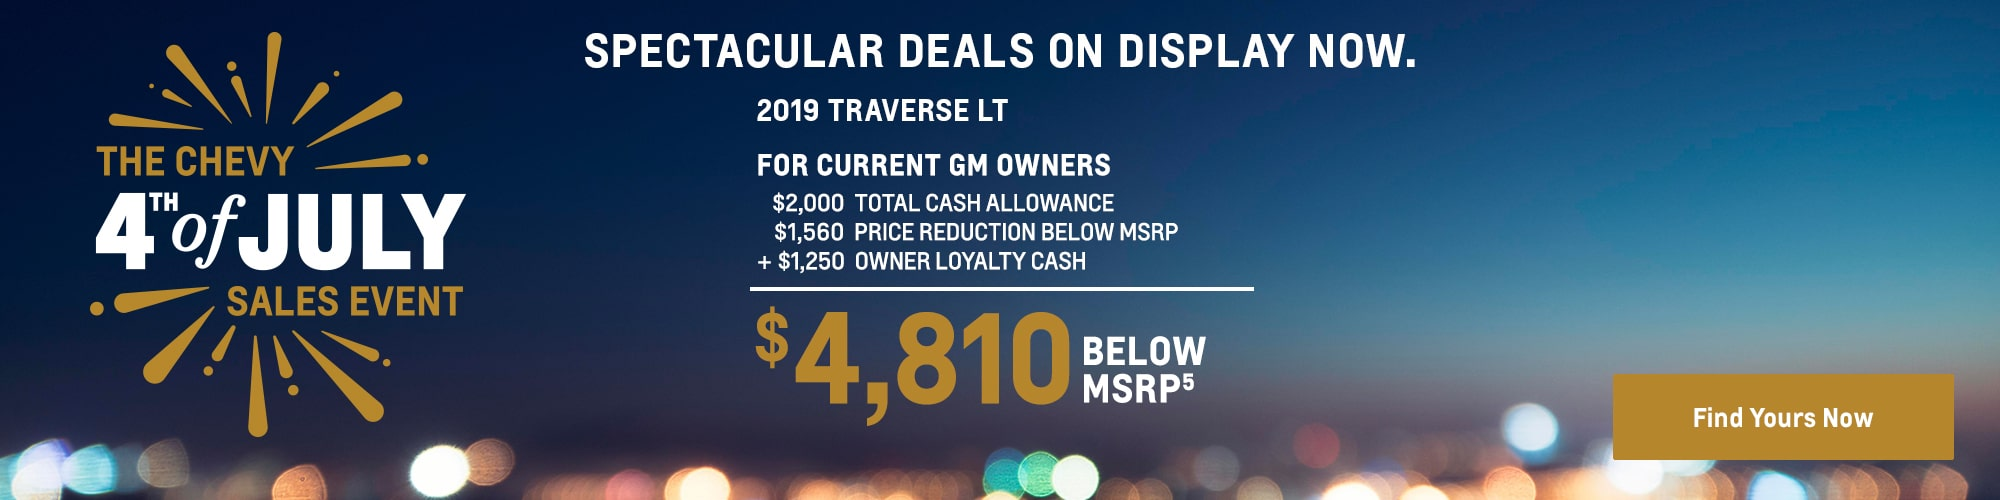 2019 Traverse: $4,810 Below MSRP